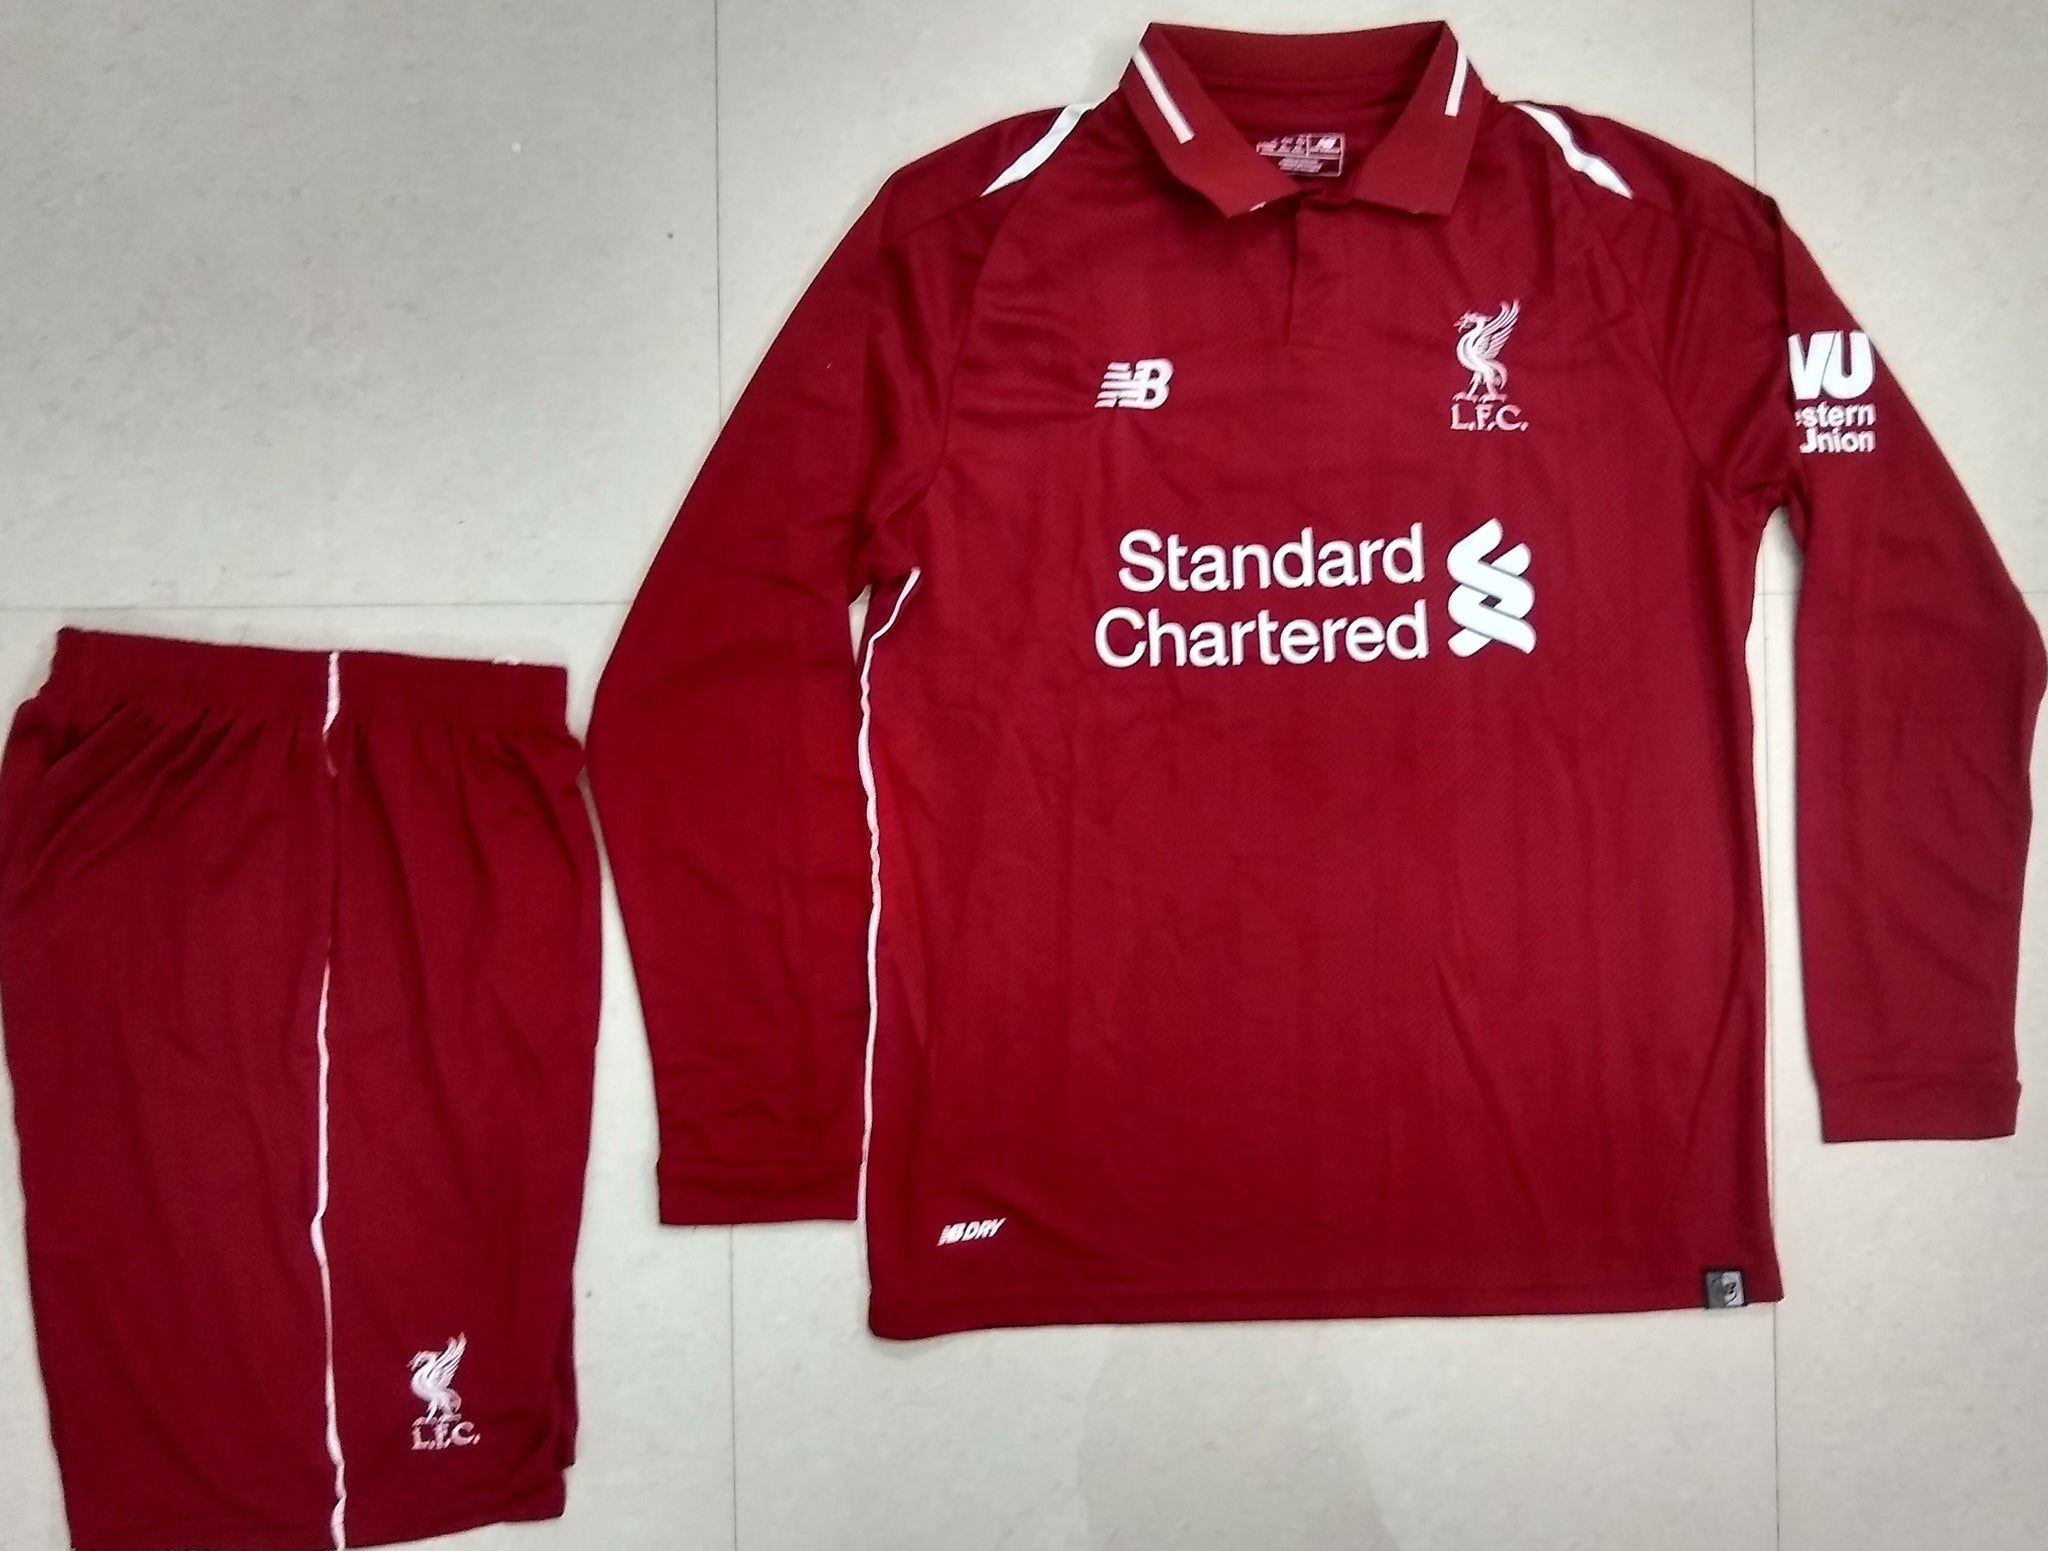 d1a22e7af ... Original Liverpool Premium Home Full Sleeve Jersey and Shorts   Optional  2018-19